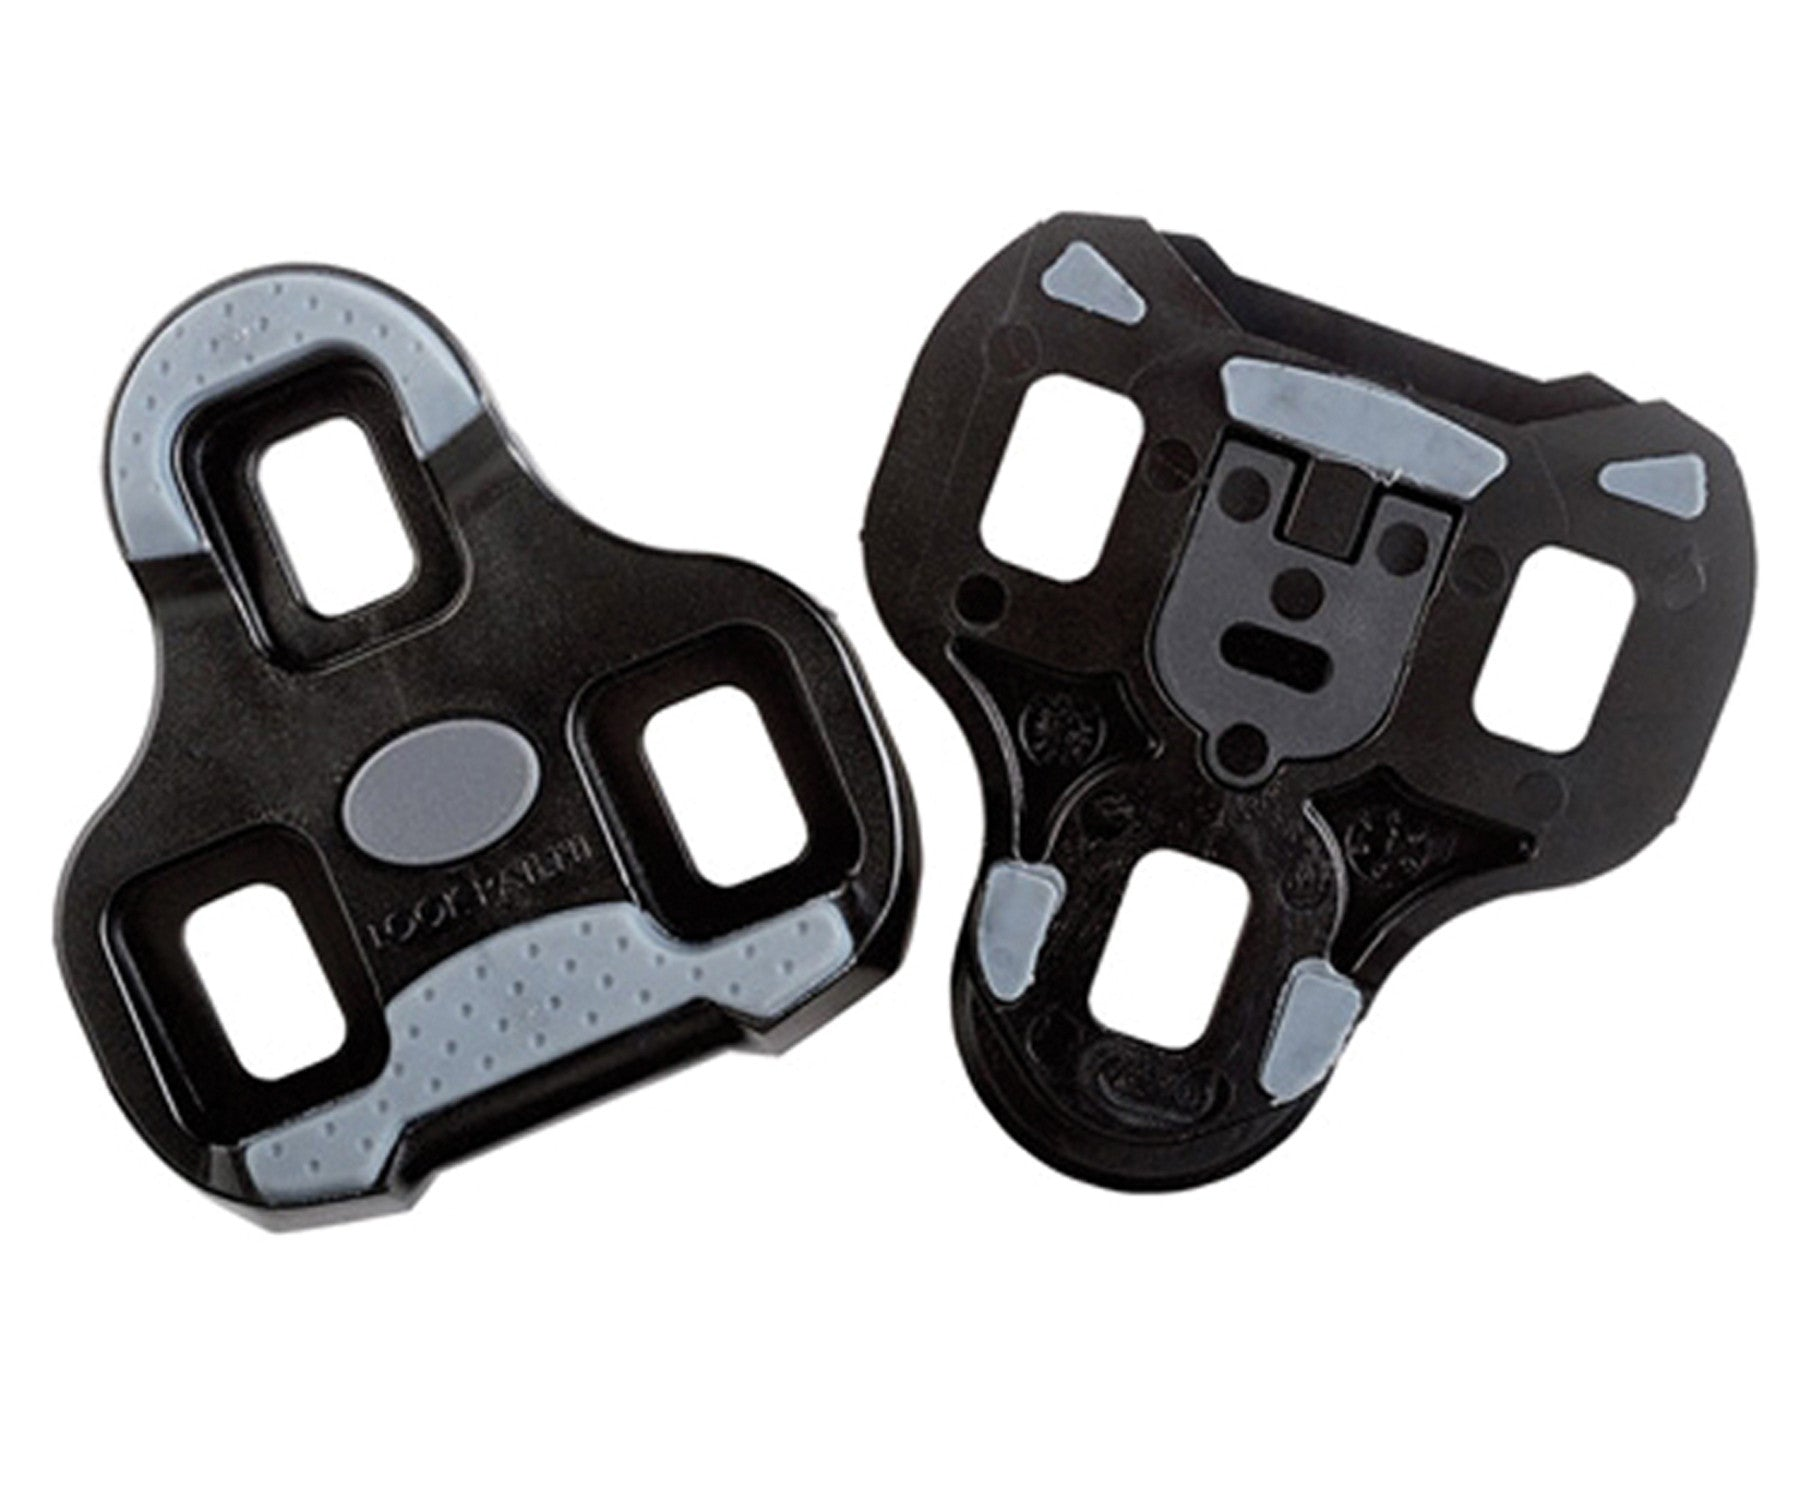 Look Keo Grip cleats - Retrogression